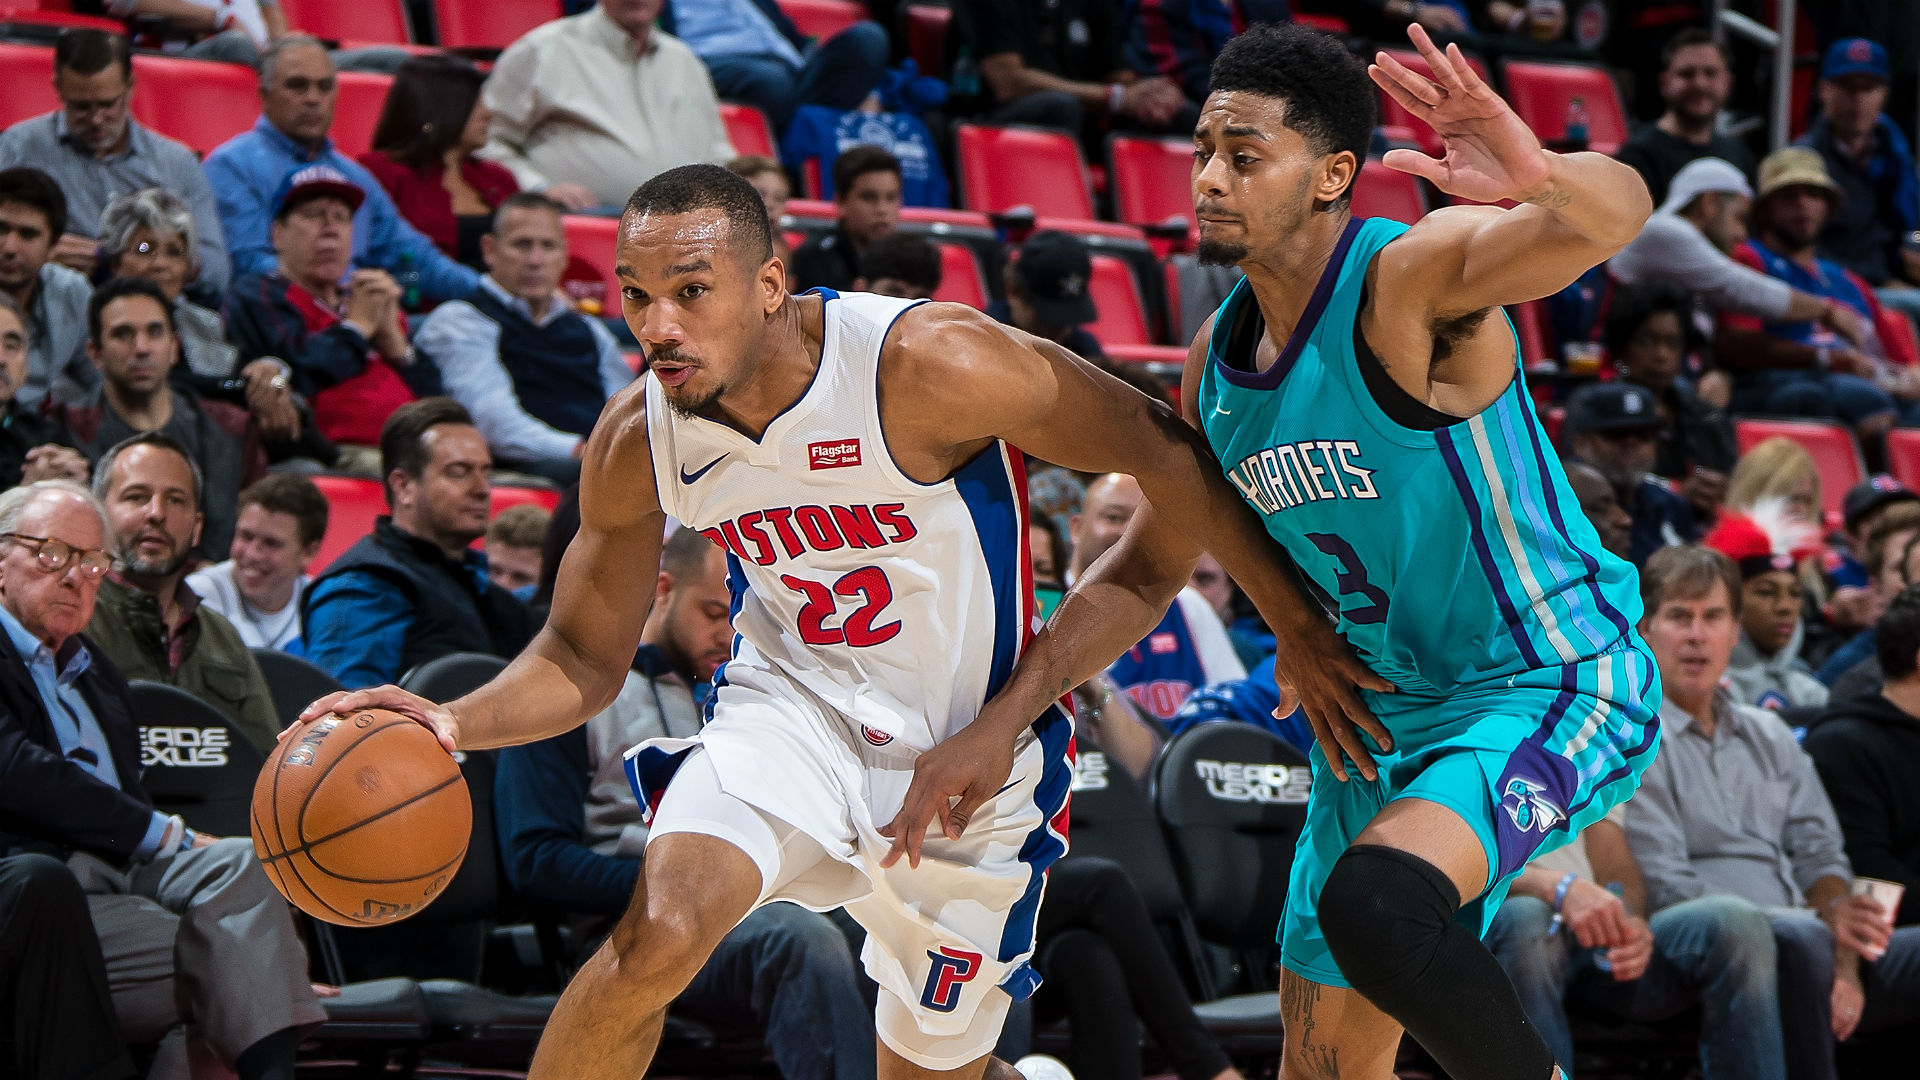 With Avery Bradley, Pistons find shooting guard they've always needed